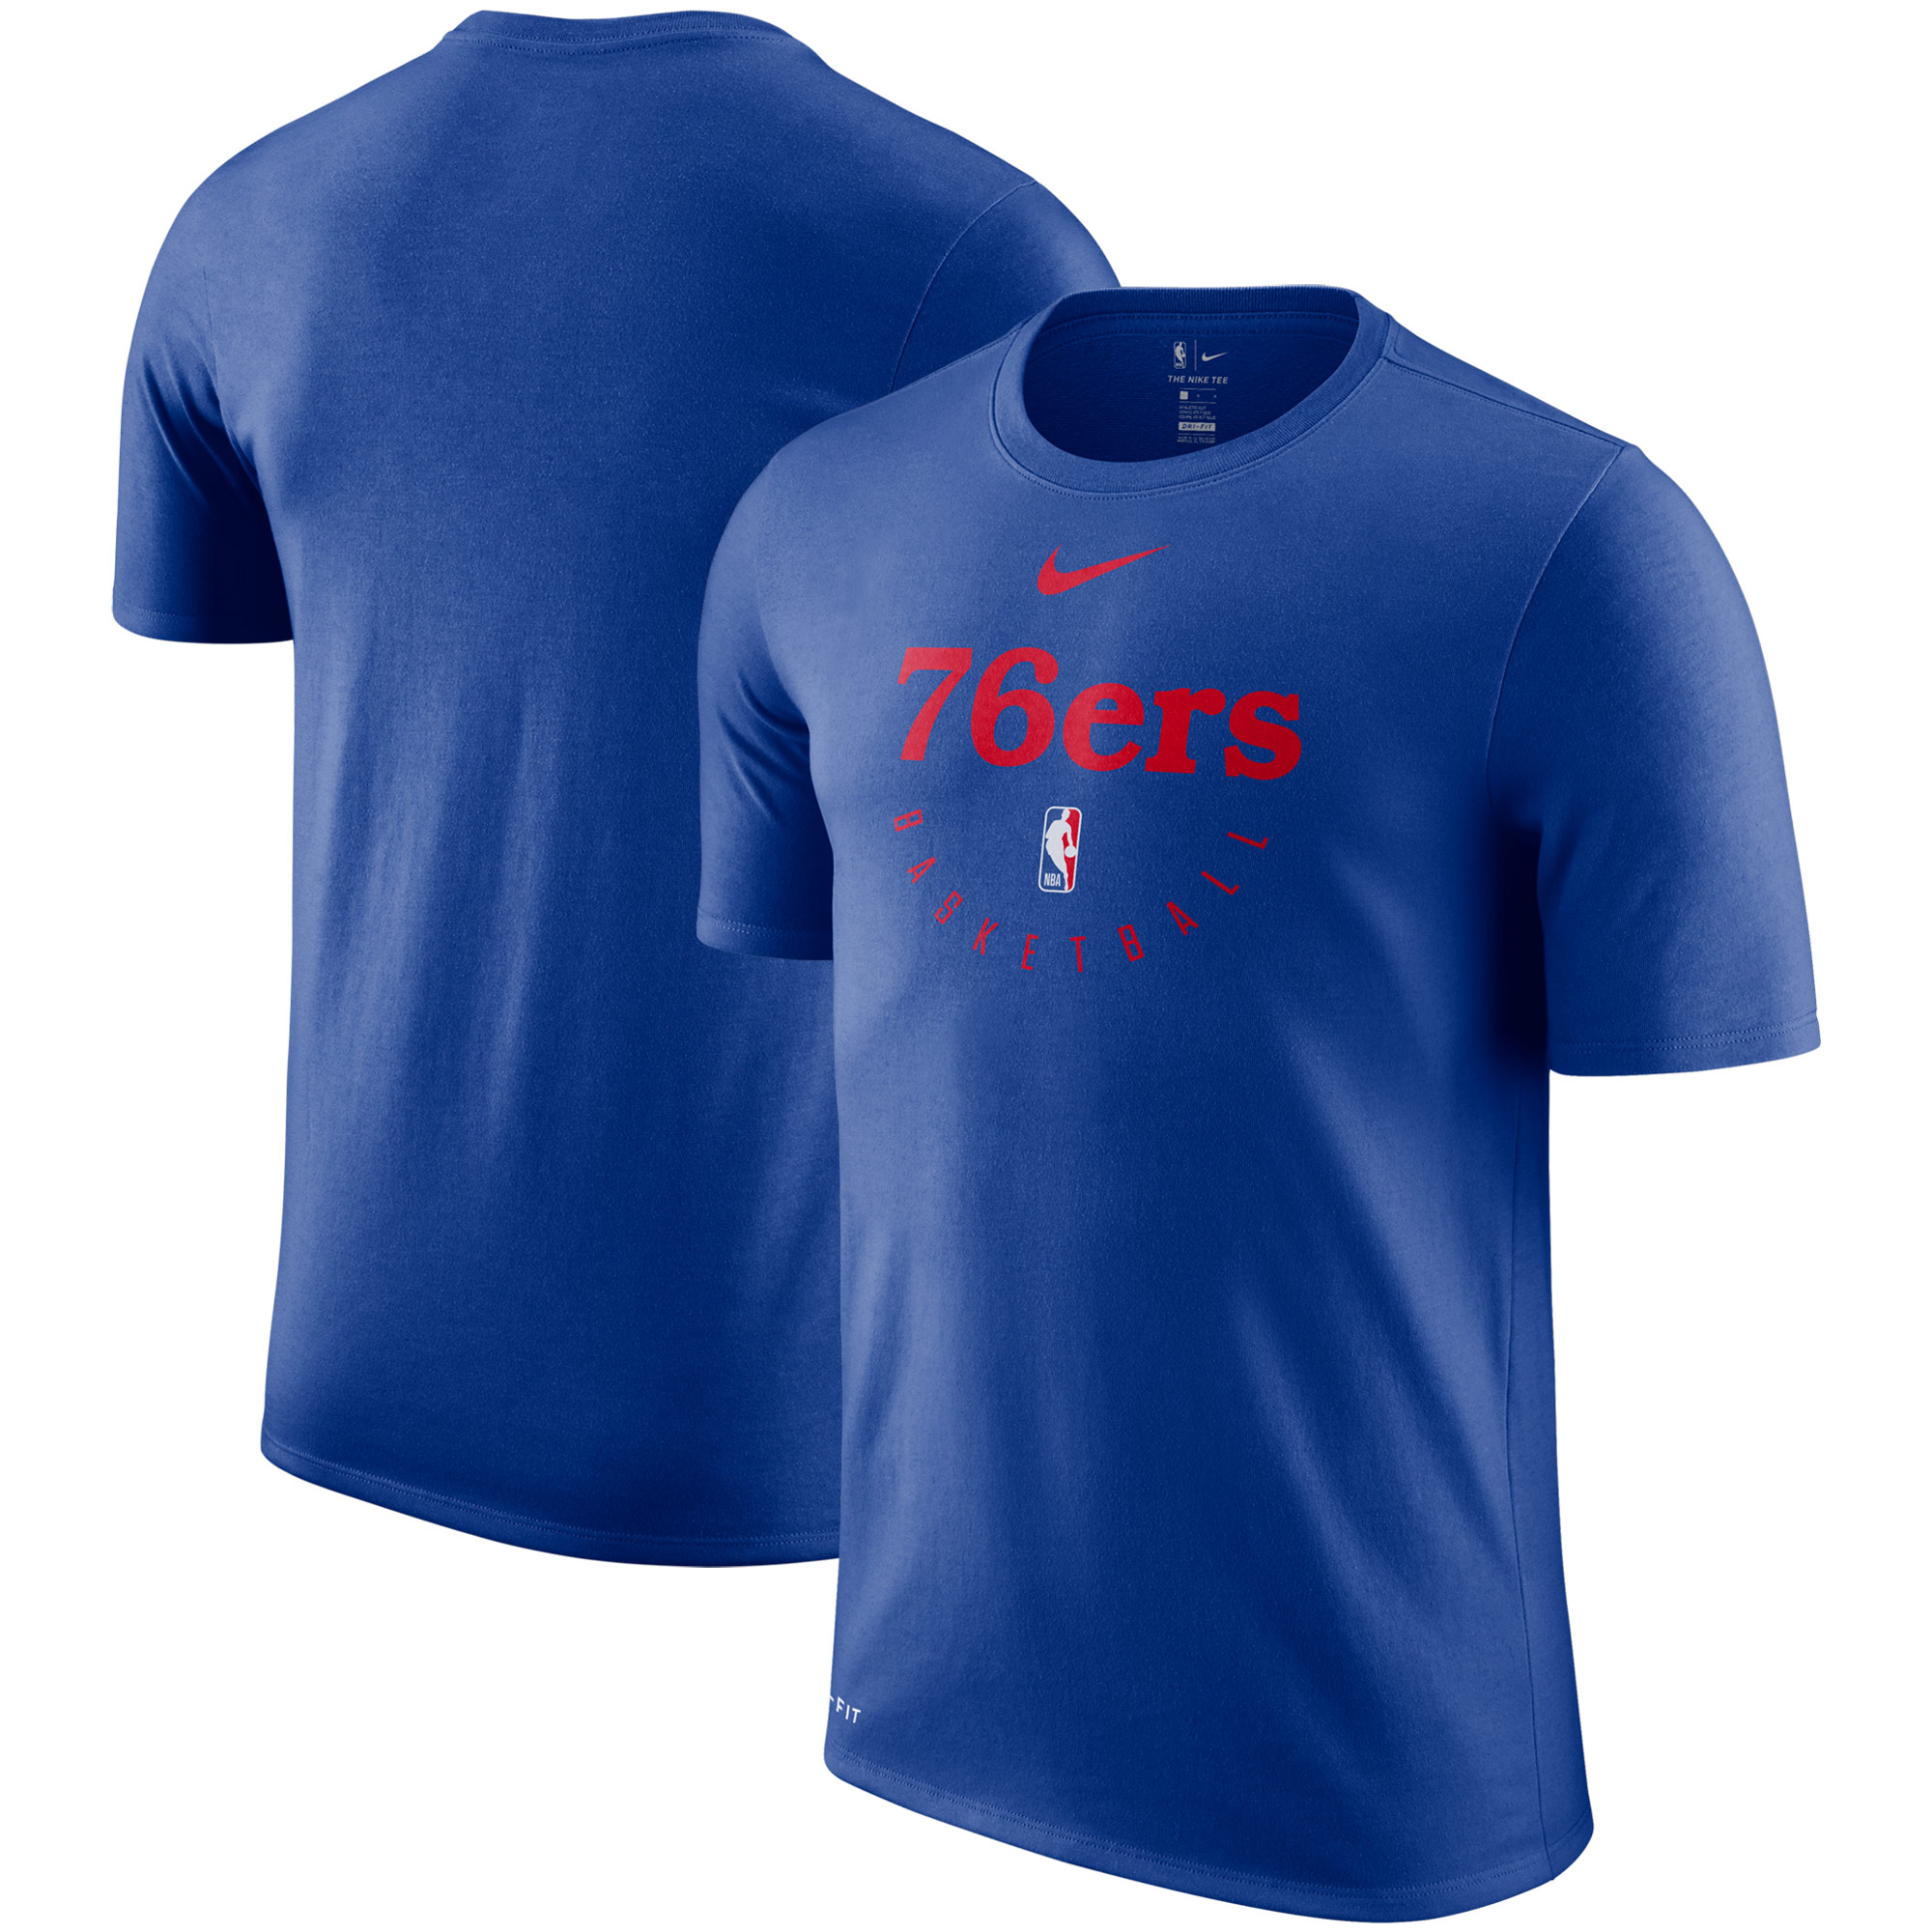 Philadelphia 76ers Nike Practice Legend Performance T-Shirt - Royal